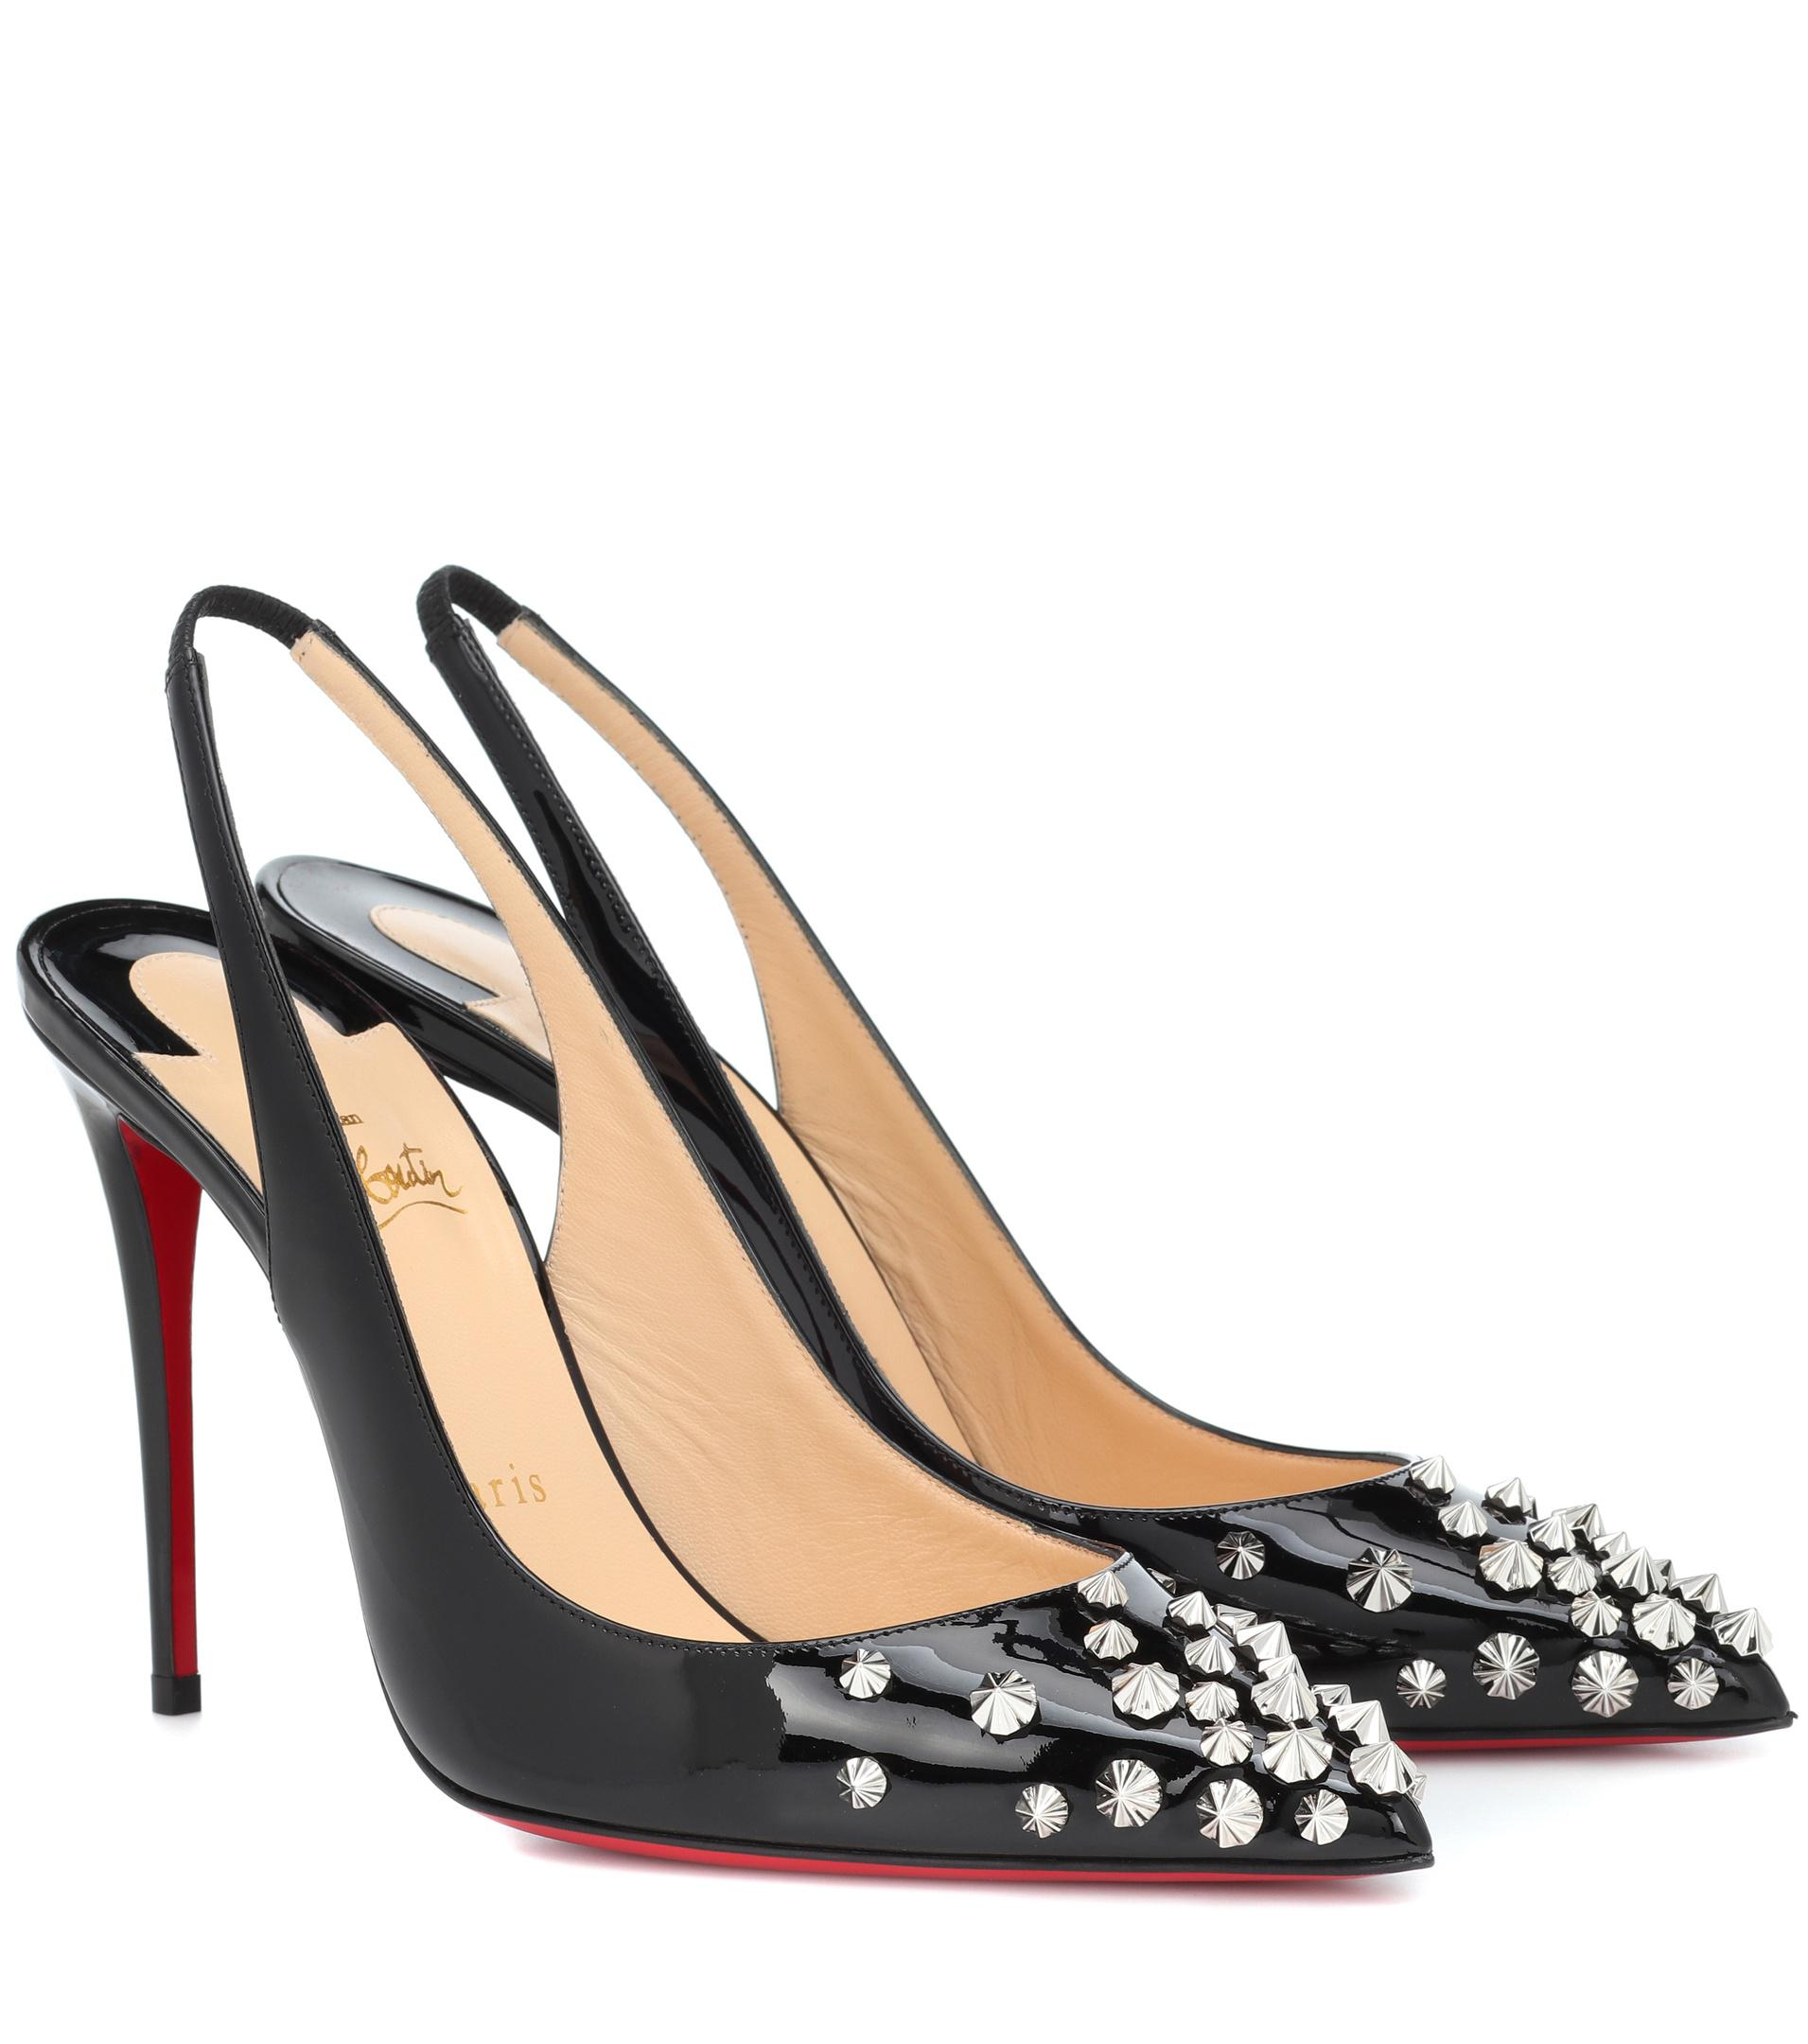 d97c97e0601a Christian Louboutin Drama Sling 100 Patent Leather Pumps in Black - Lyst